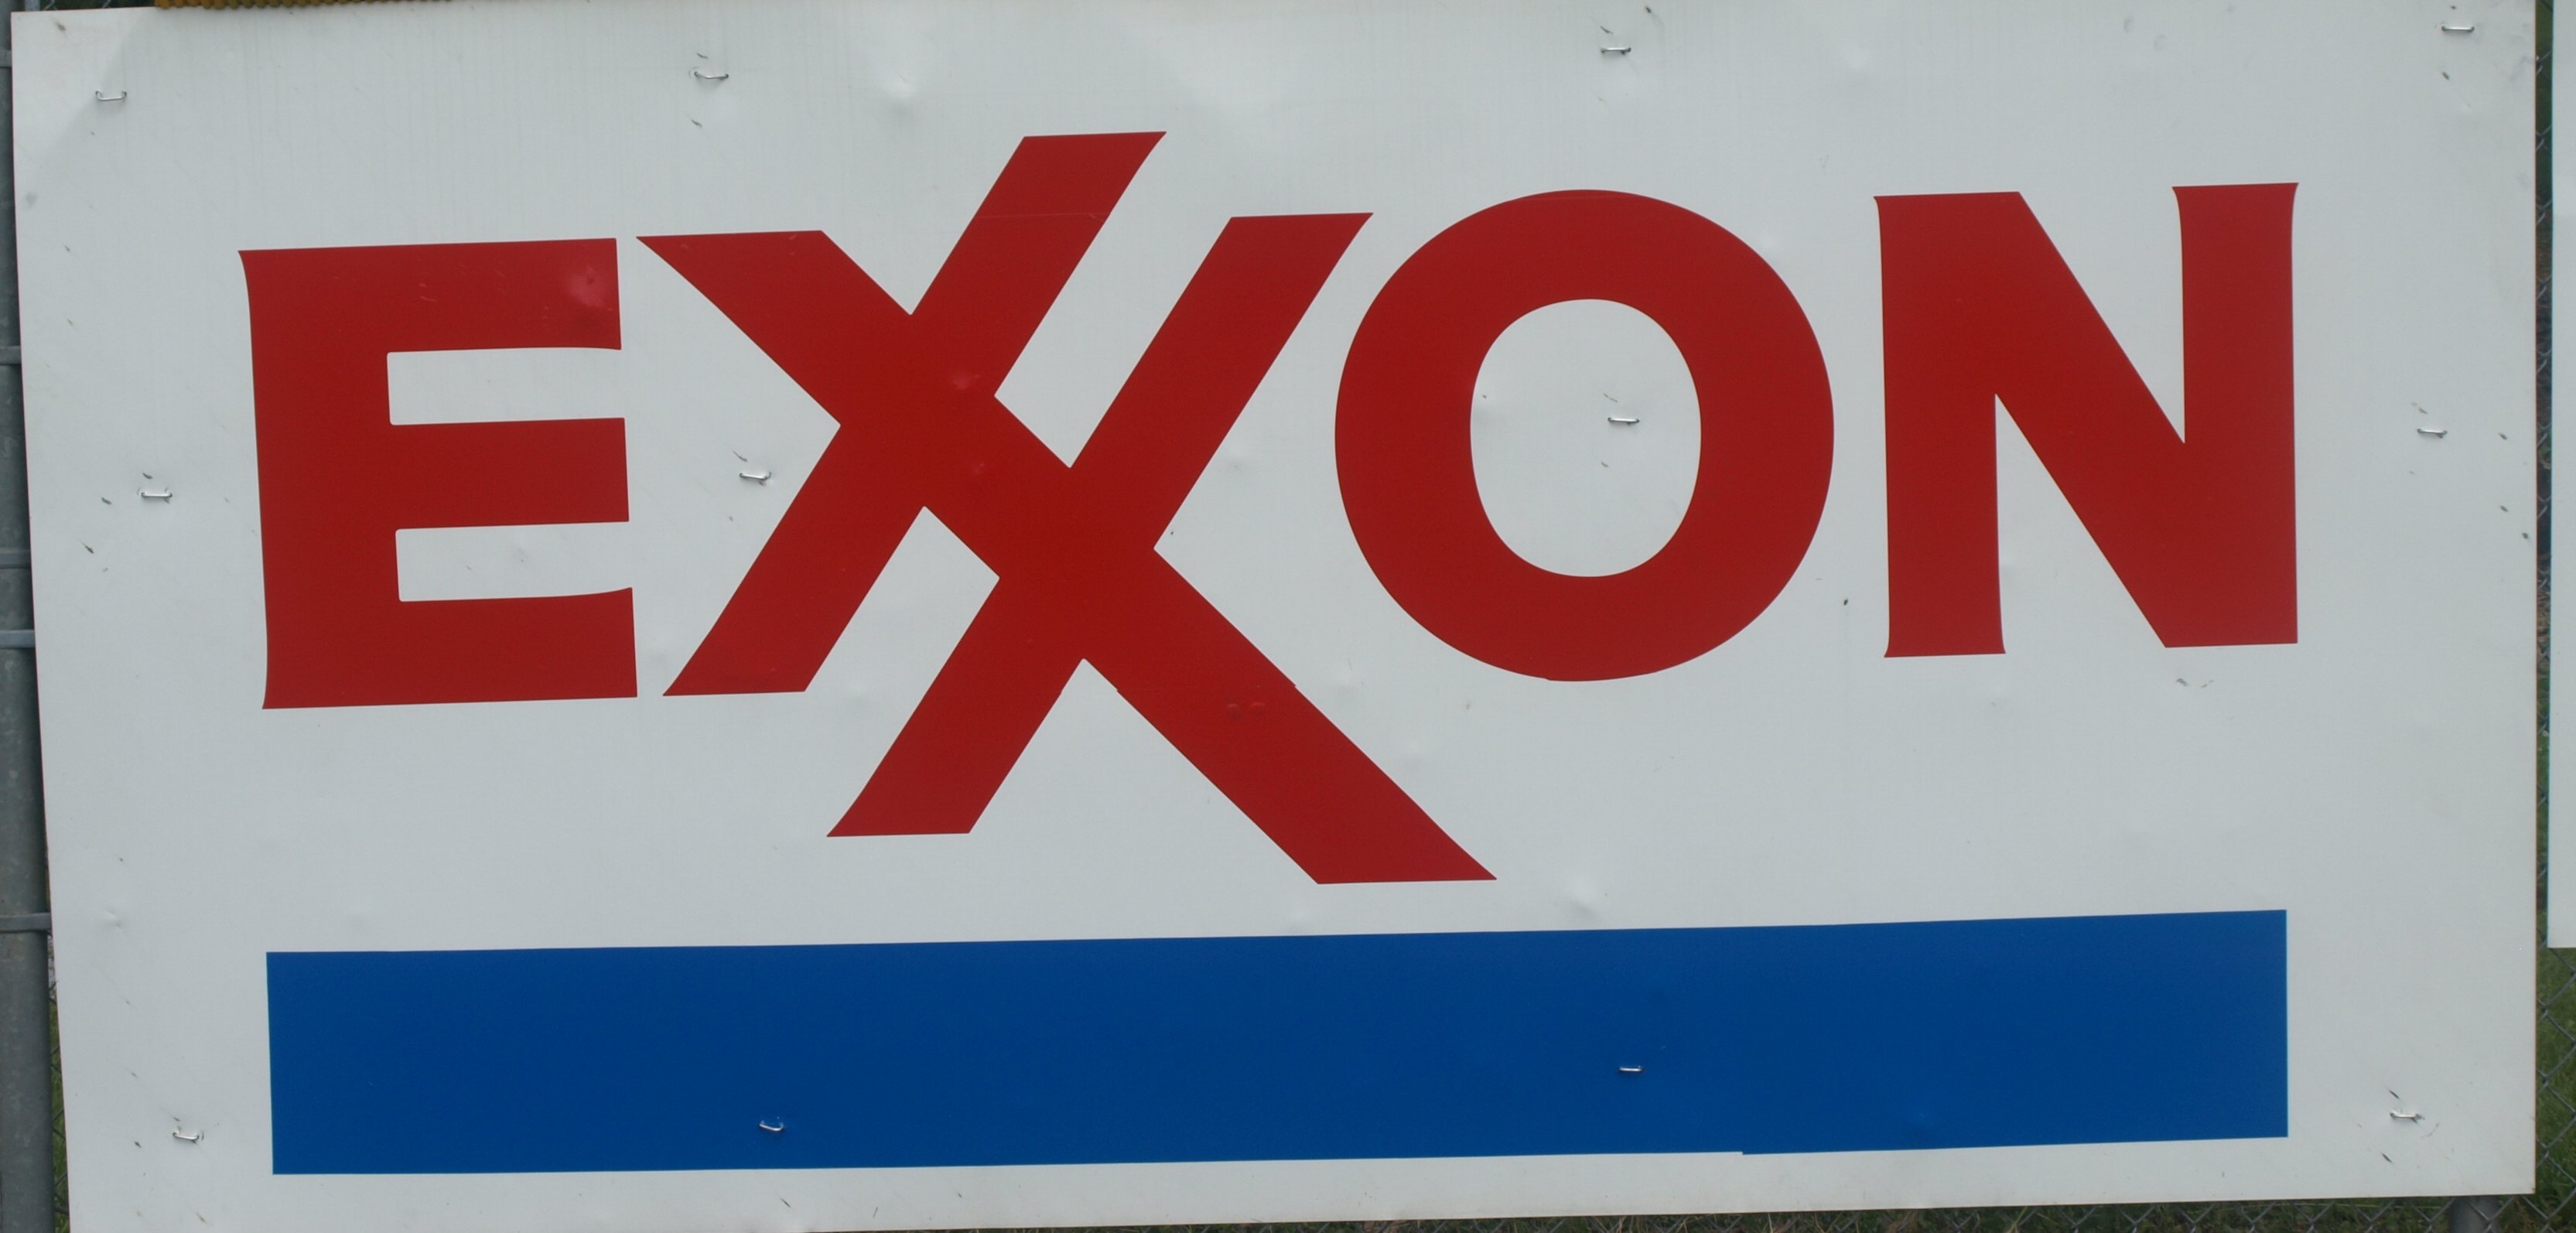 Noor-Oil Inc./Exxon